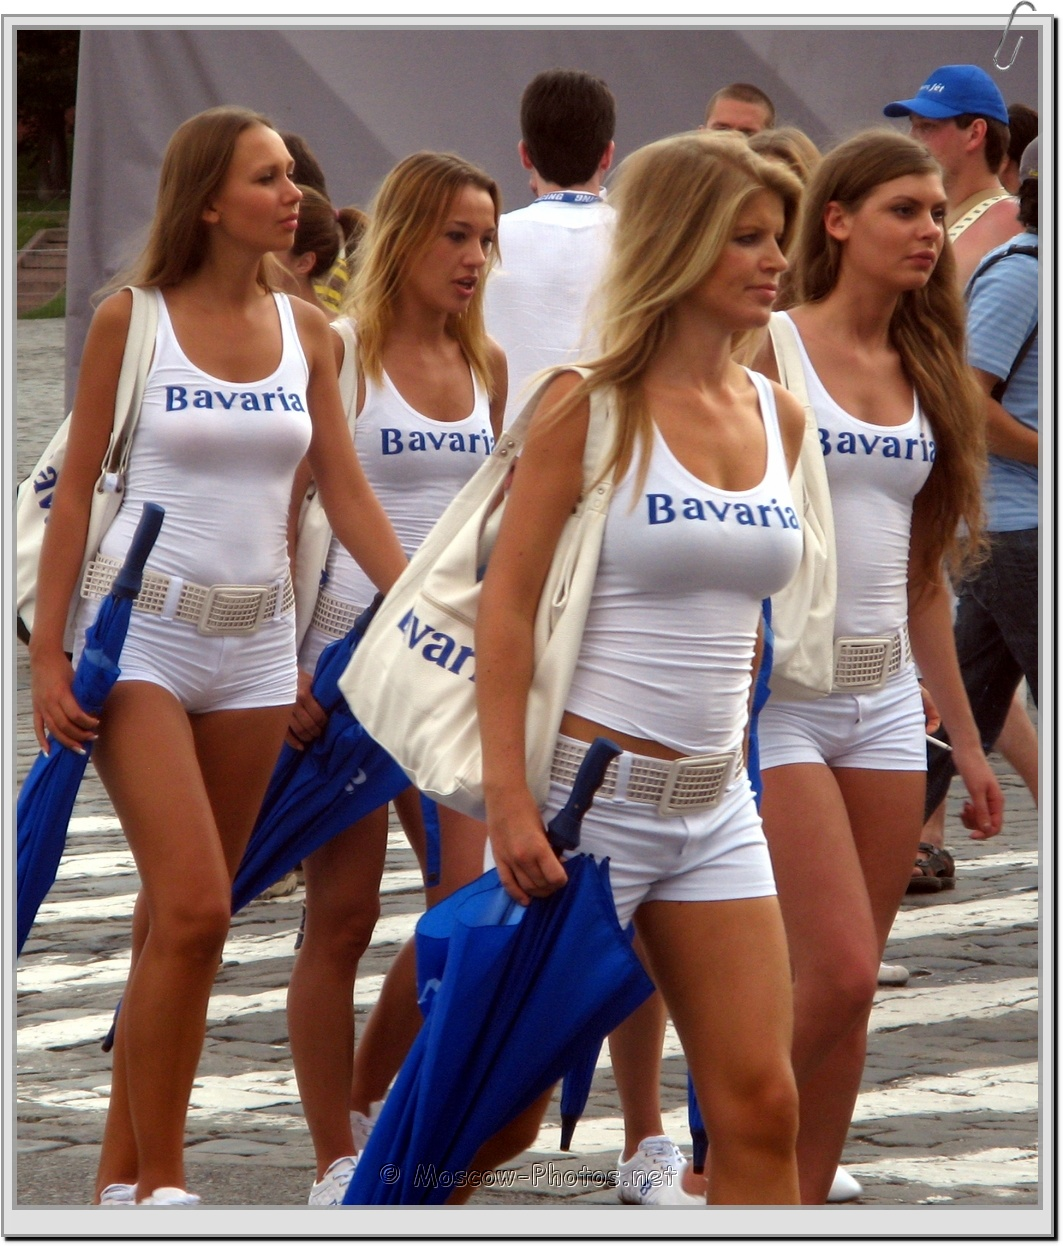 Models In White Summer Suits at Bavaria Moscow City Racing 2008